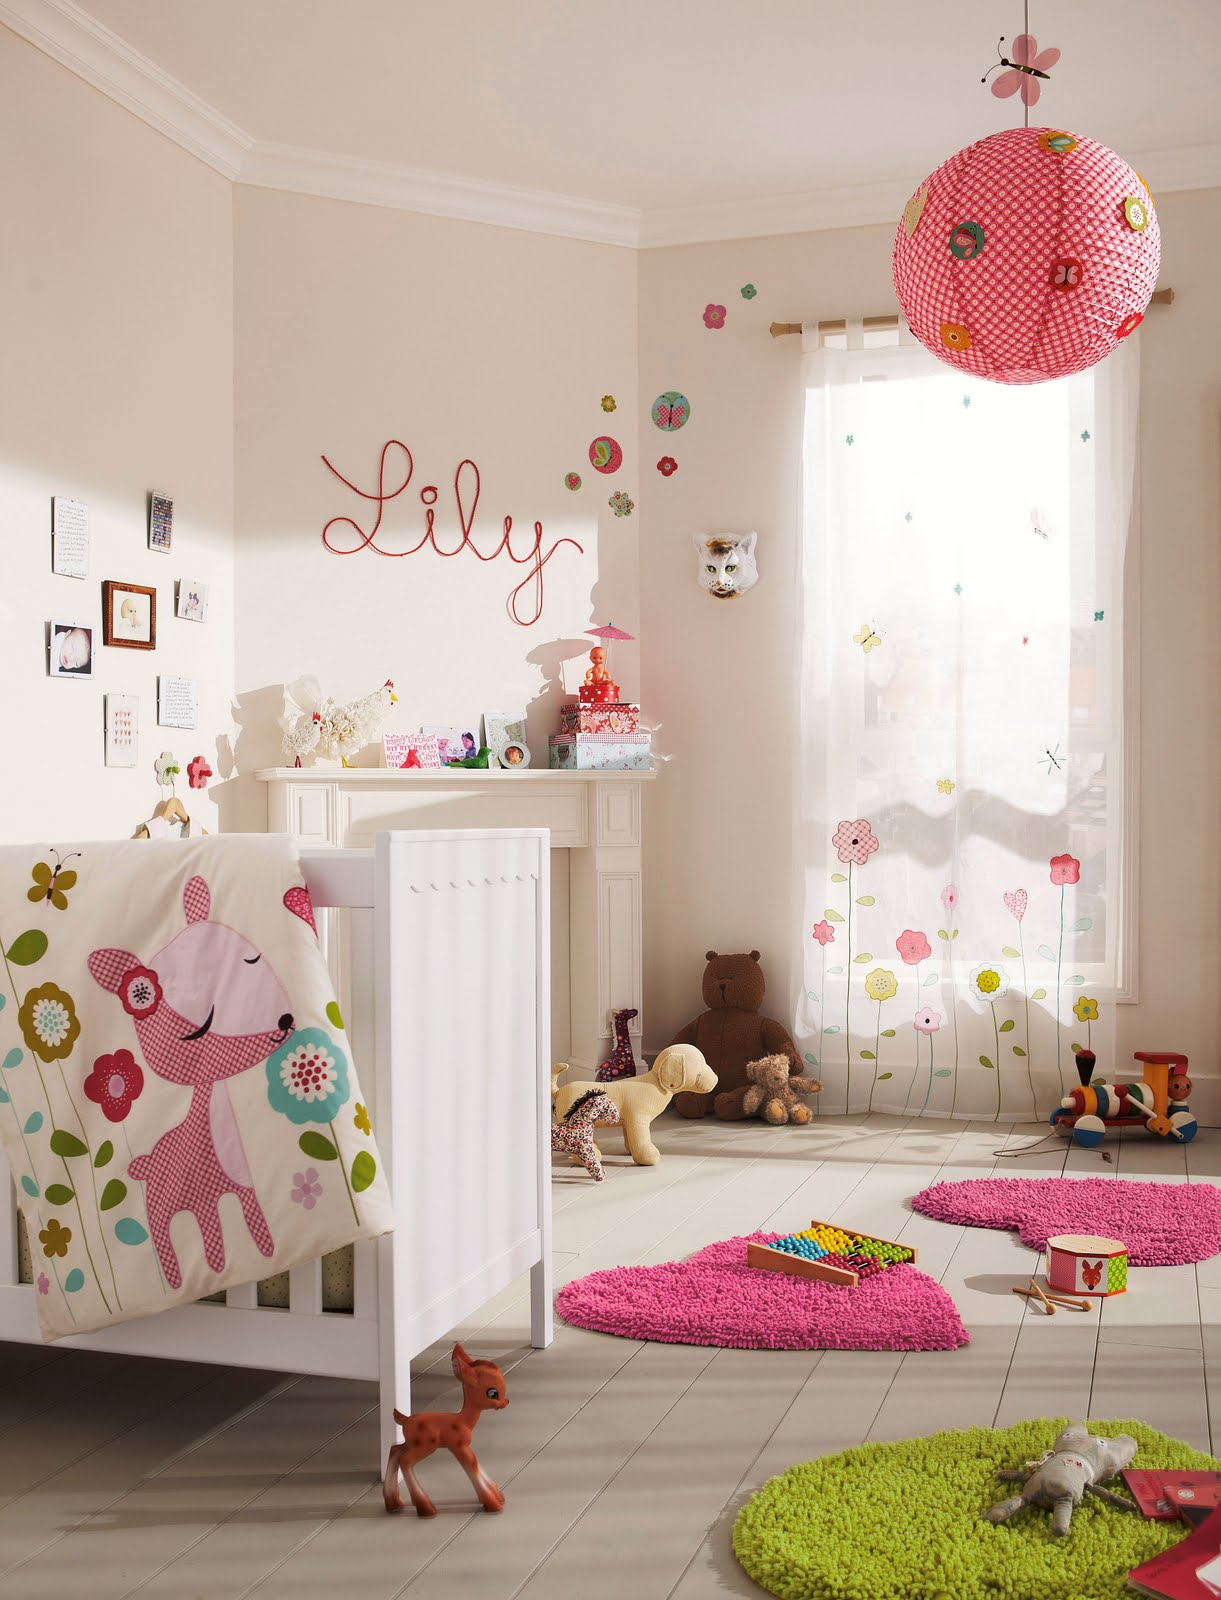 Pompons ch rie sheriff blog lifestyle mode famille for Decoration pour chambre fille